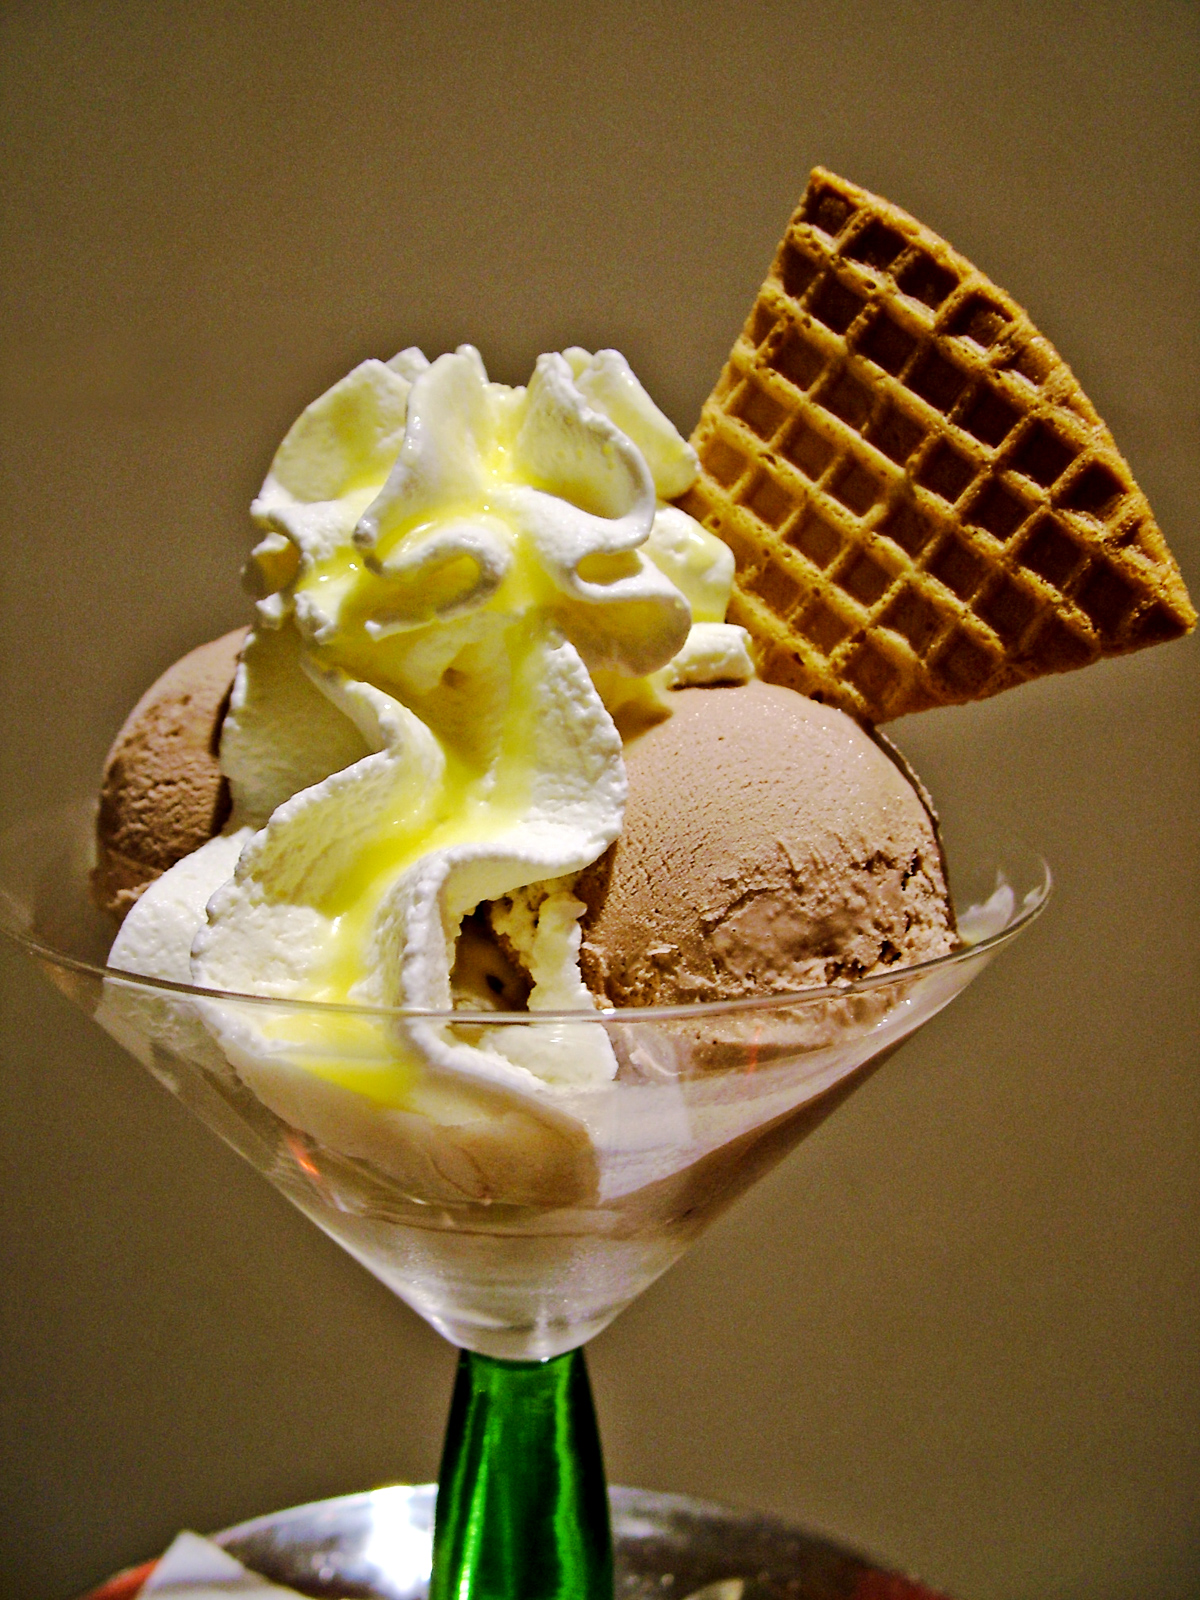 File:Ice Cream dessert 02.jpg - Wikipedia